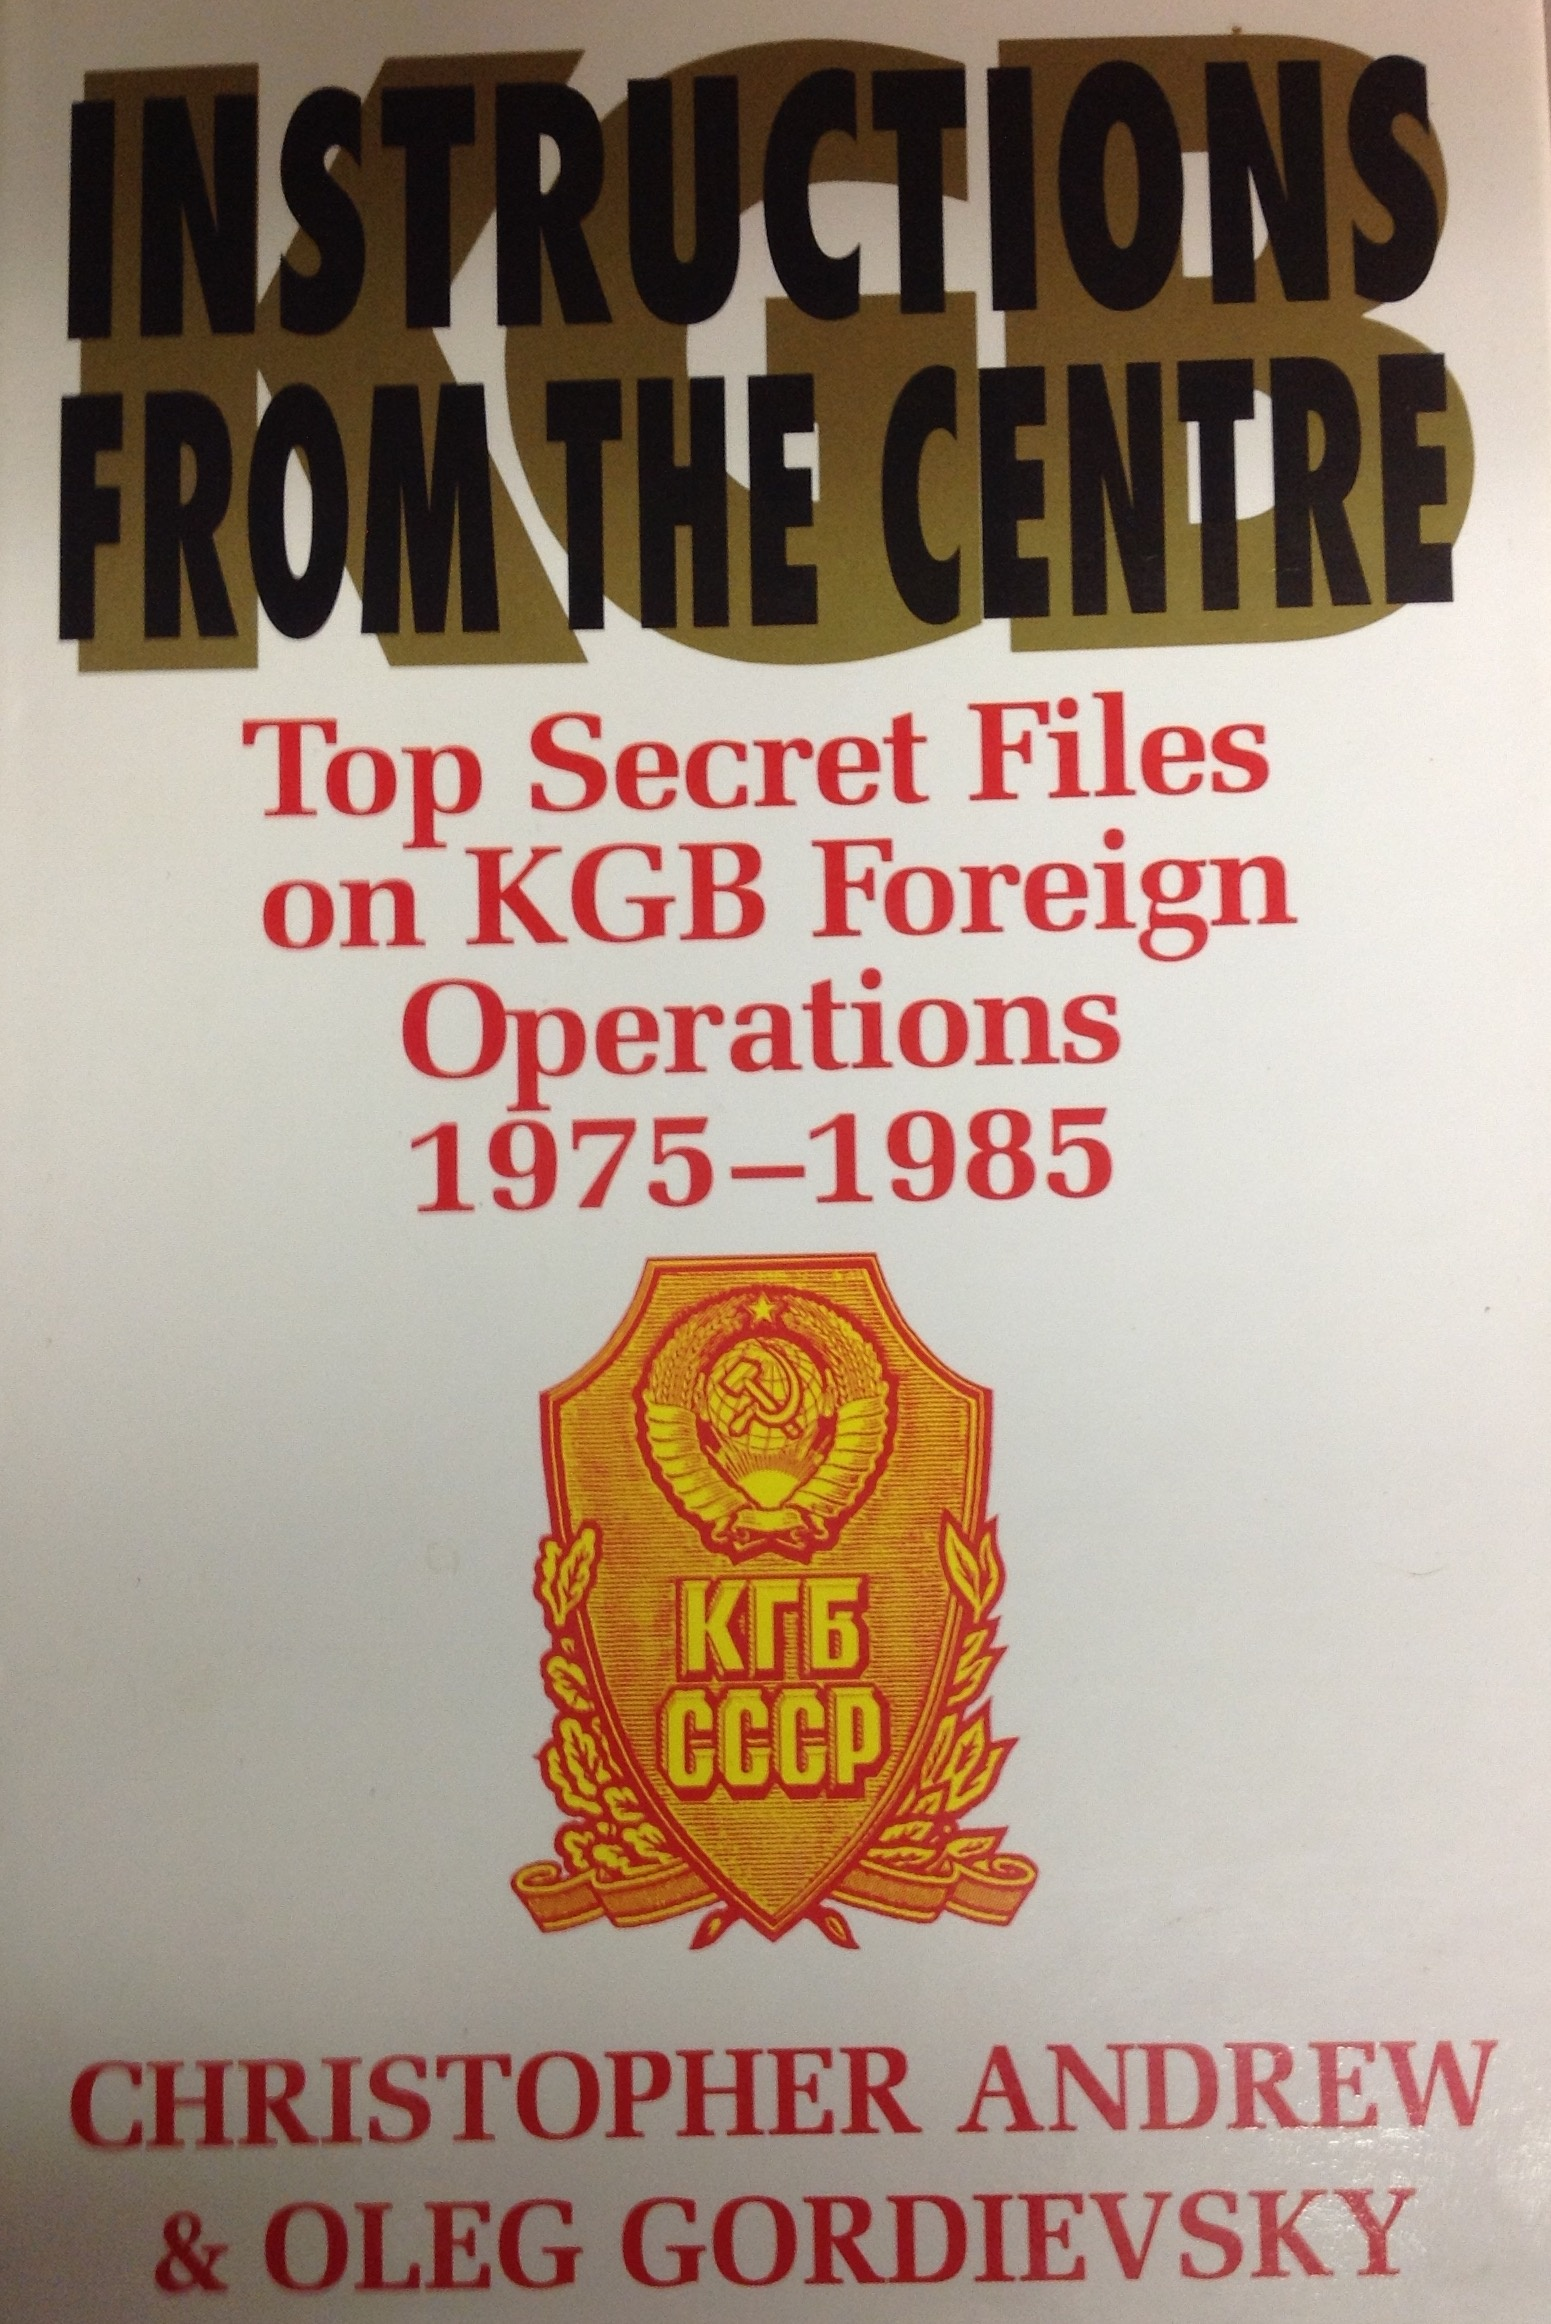 How brutal was the KGB and what methods did they use prior to 1975